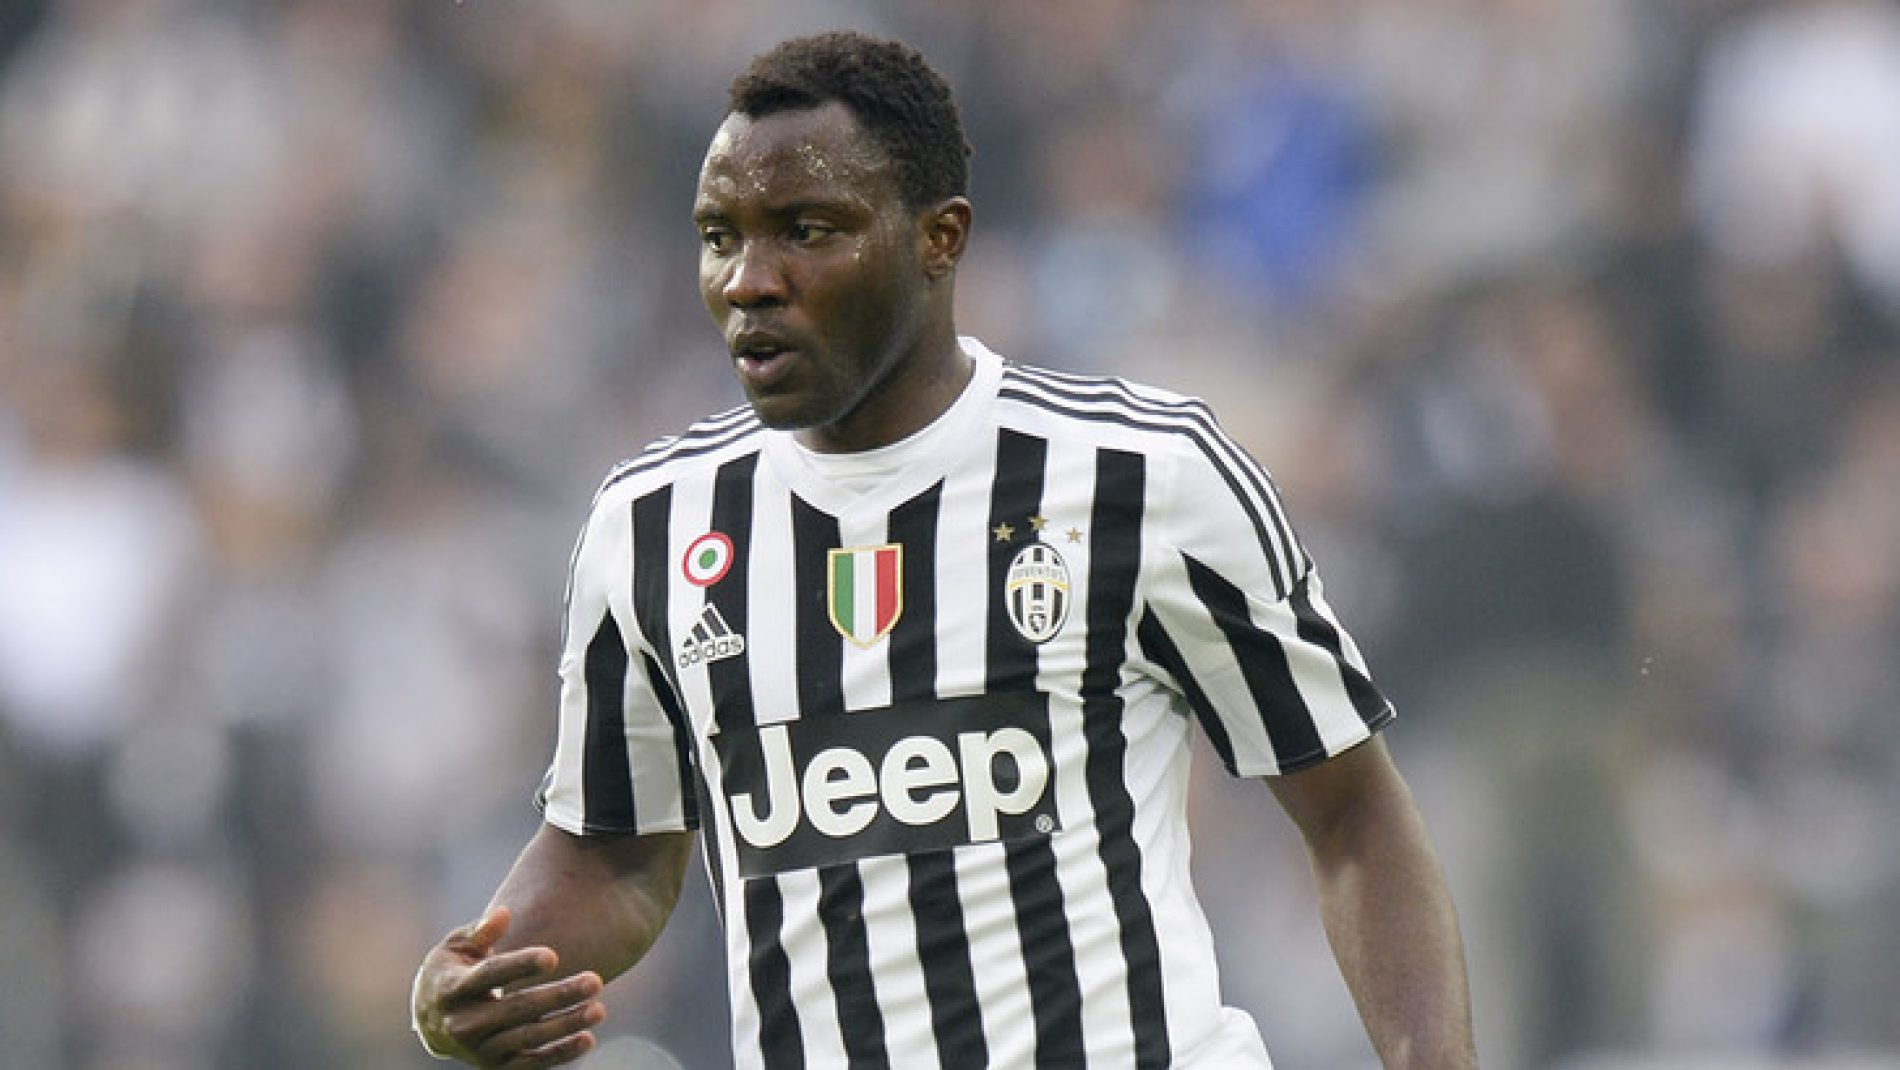 Juventus coach Allegri wants to keep versatile Kwadwo Asamoah